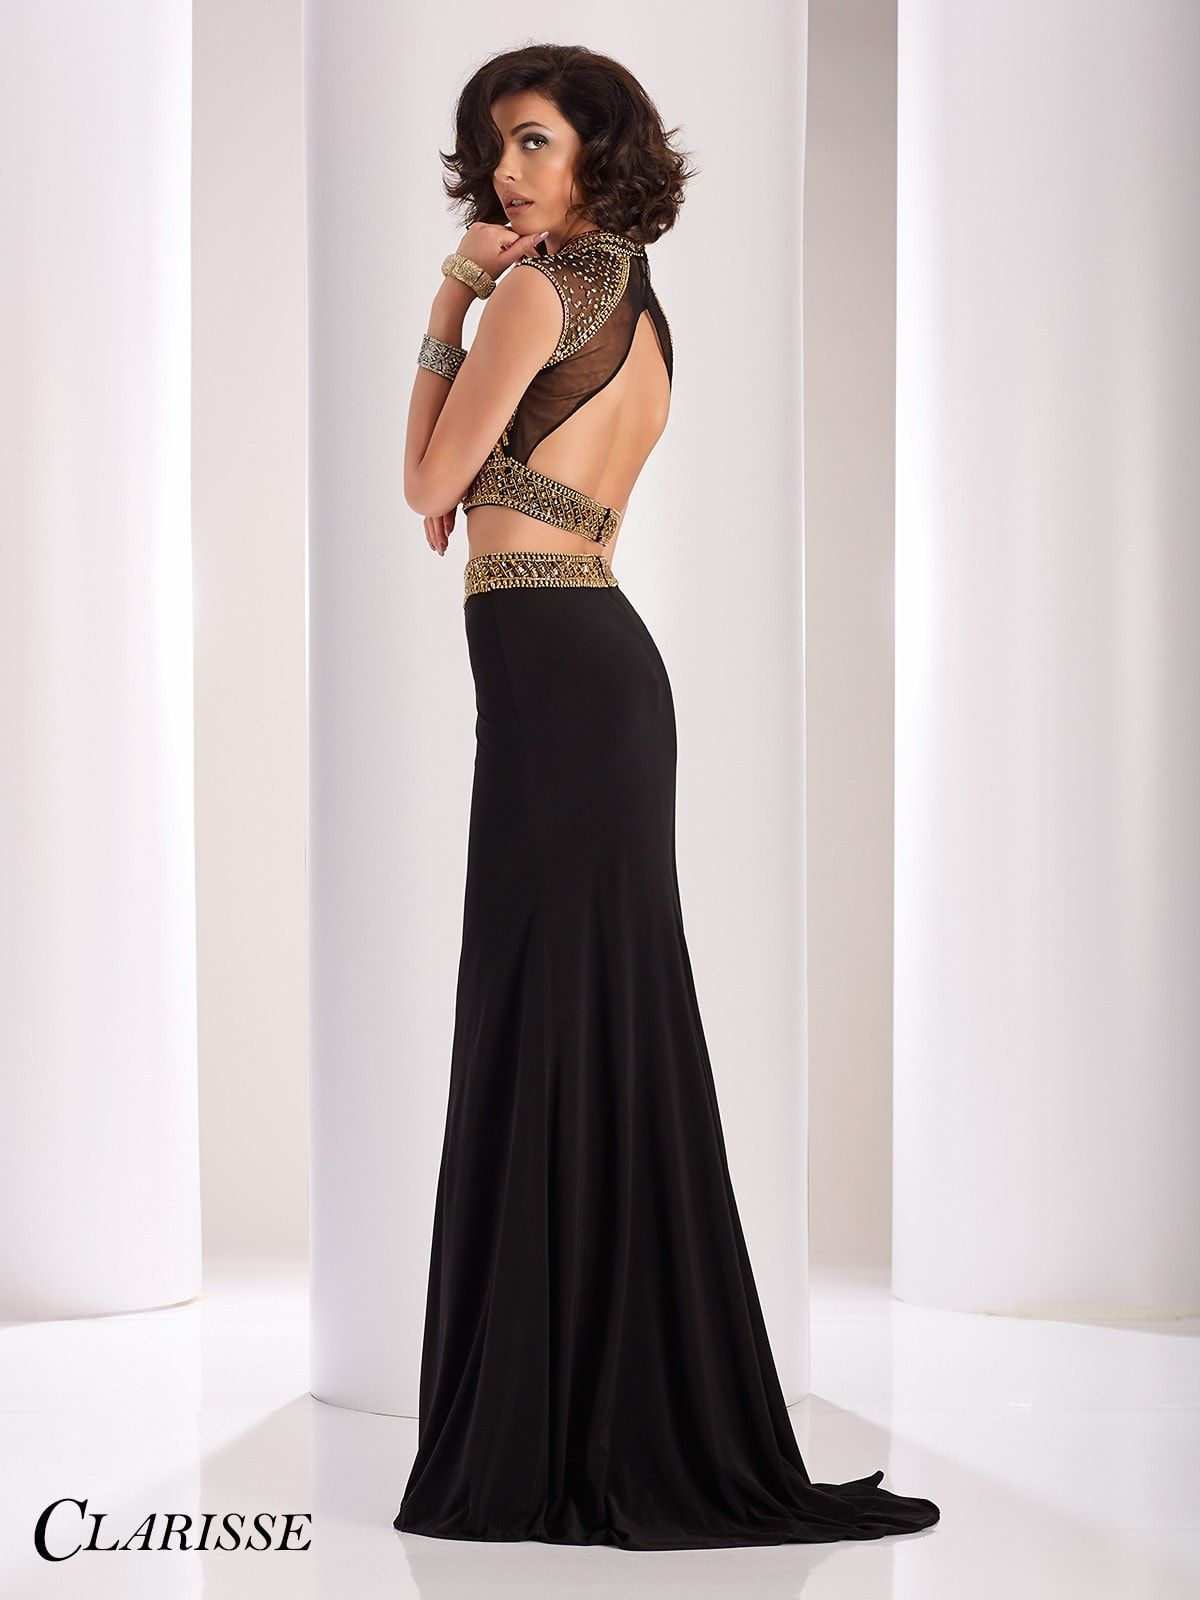 Clarisse couture blackgold open back twopiece prom dress